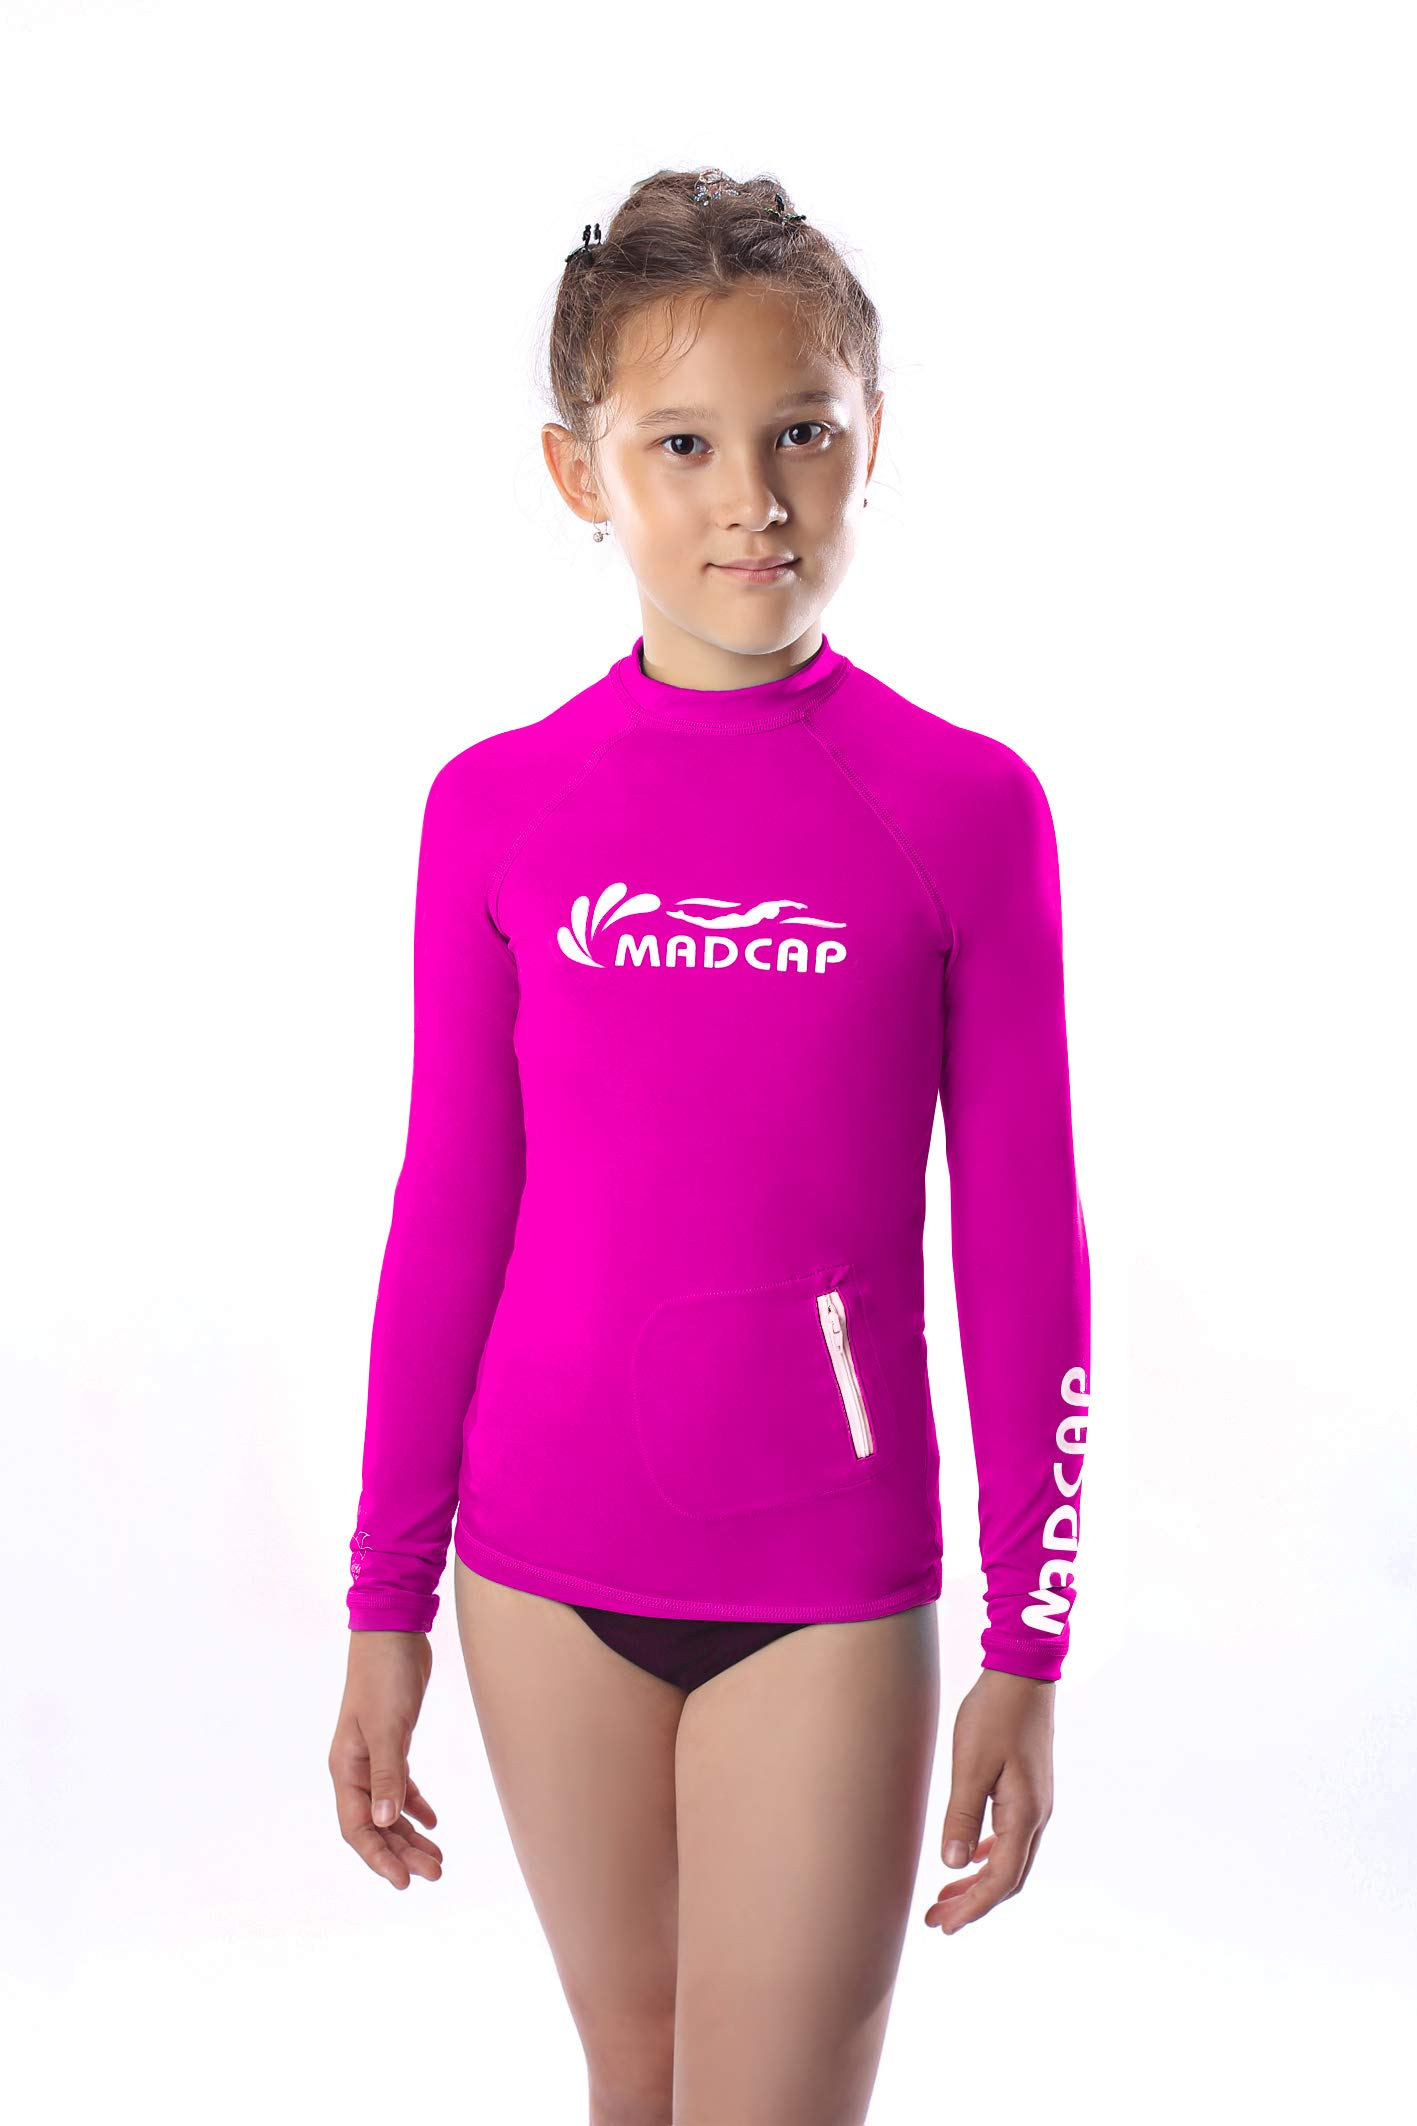 MADCAP Girls Rash Guard Long Sleeve Swimwear Swim Surf Shirt Top UV Sun Protection for Toddler and Teen Girls 4-16 Years Old (Dark Pink, X-Small / 8)